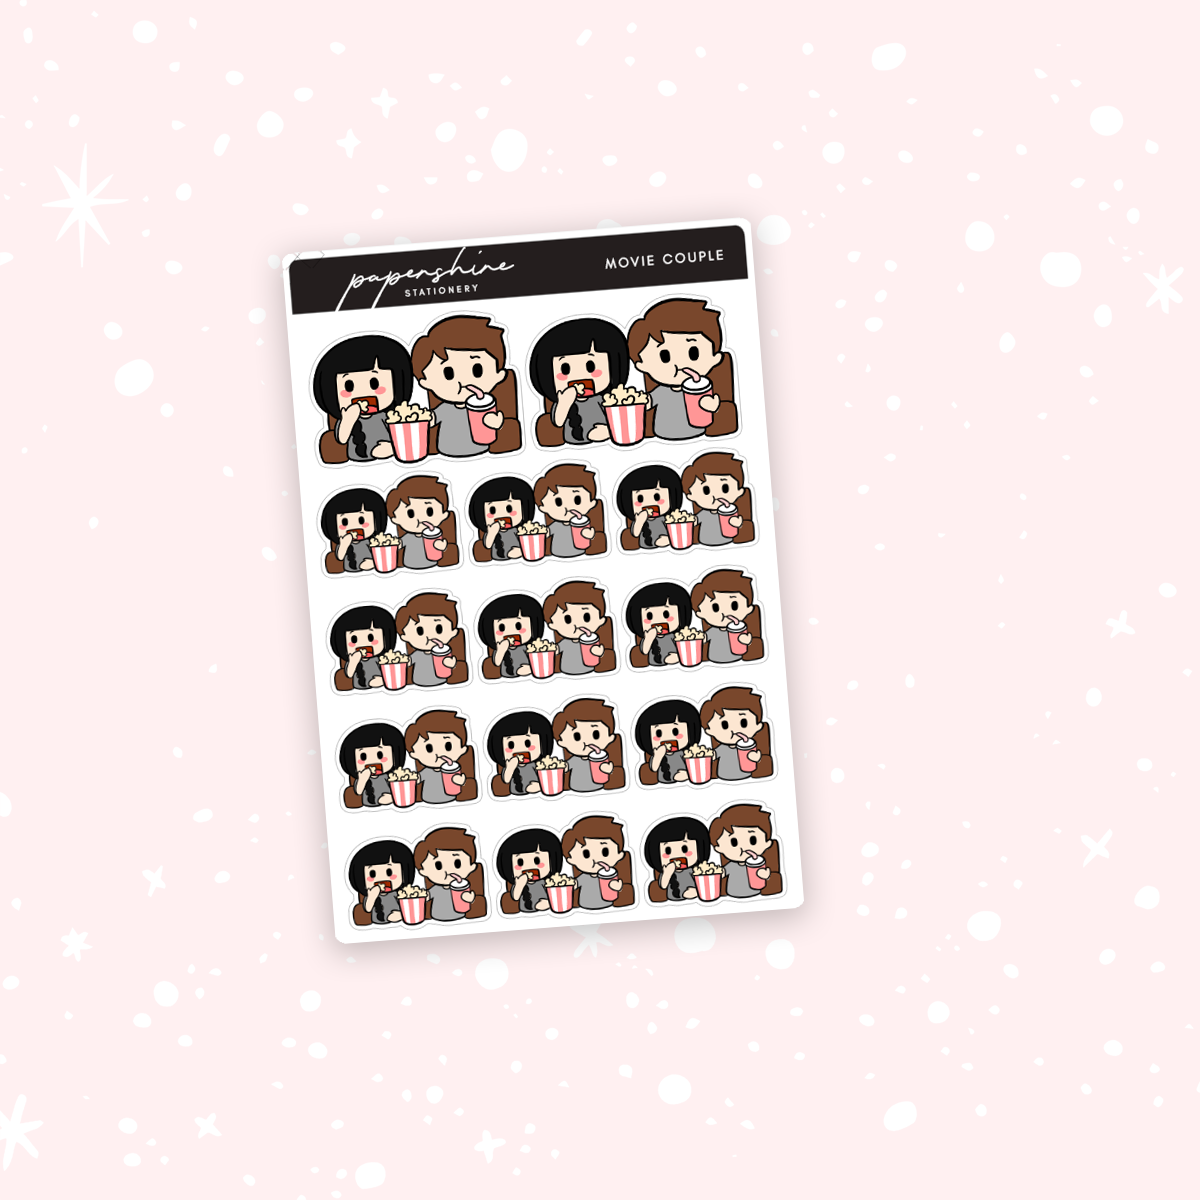 Movie Couple Nana Stickers